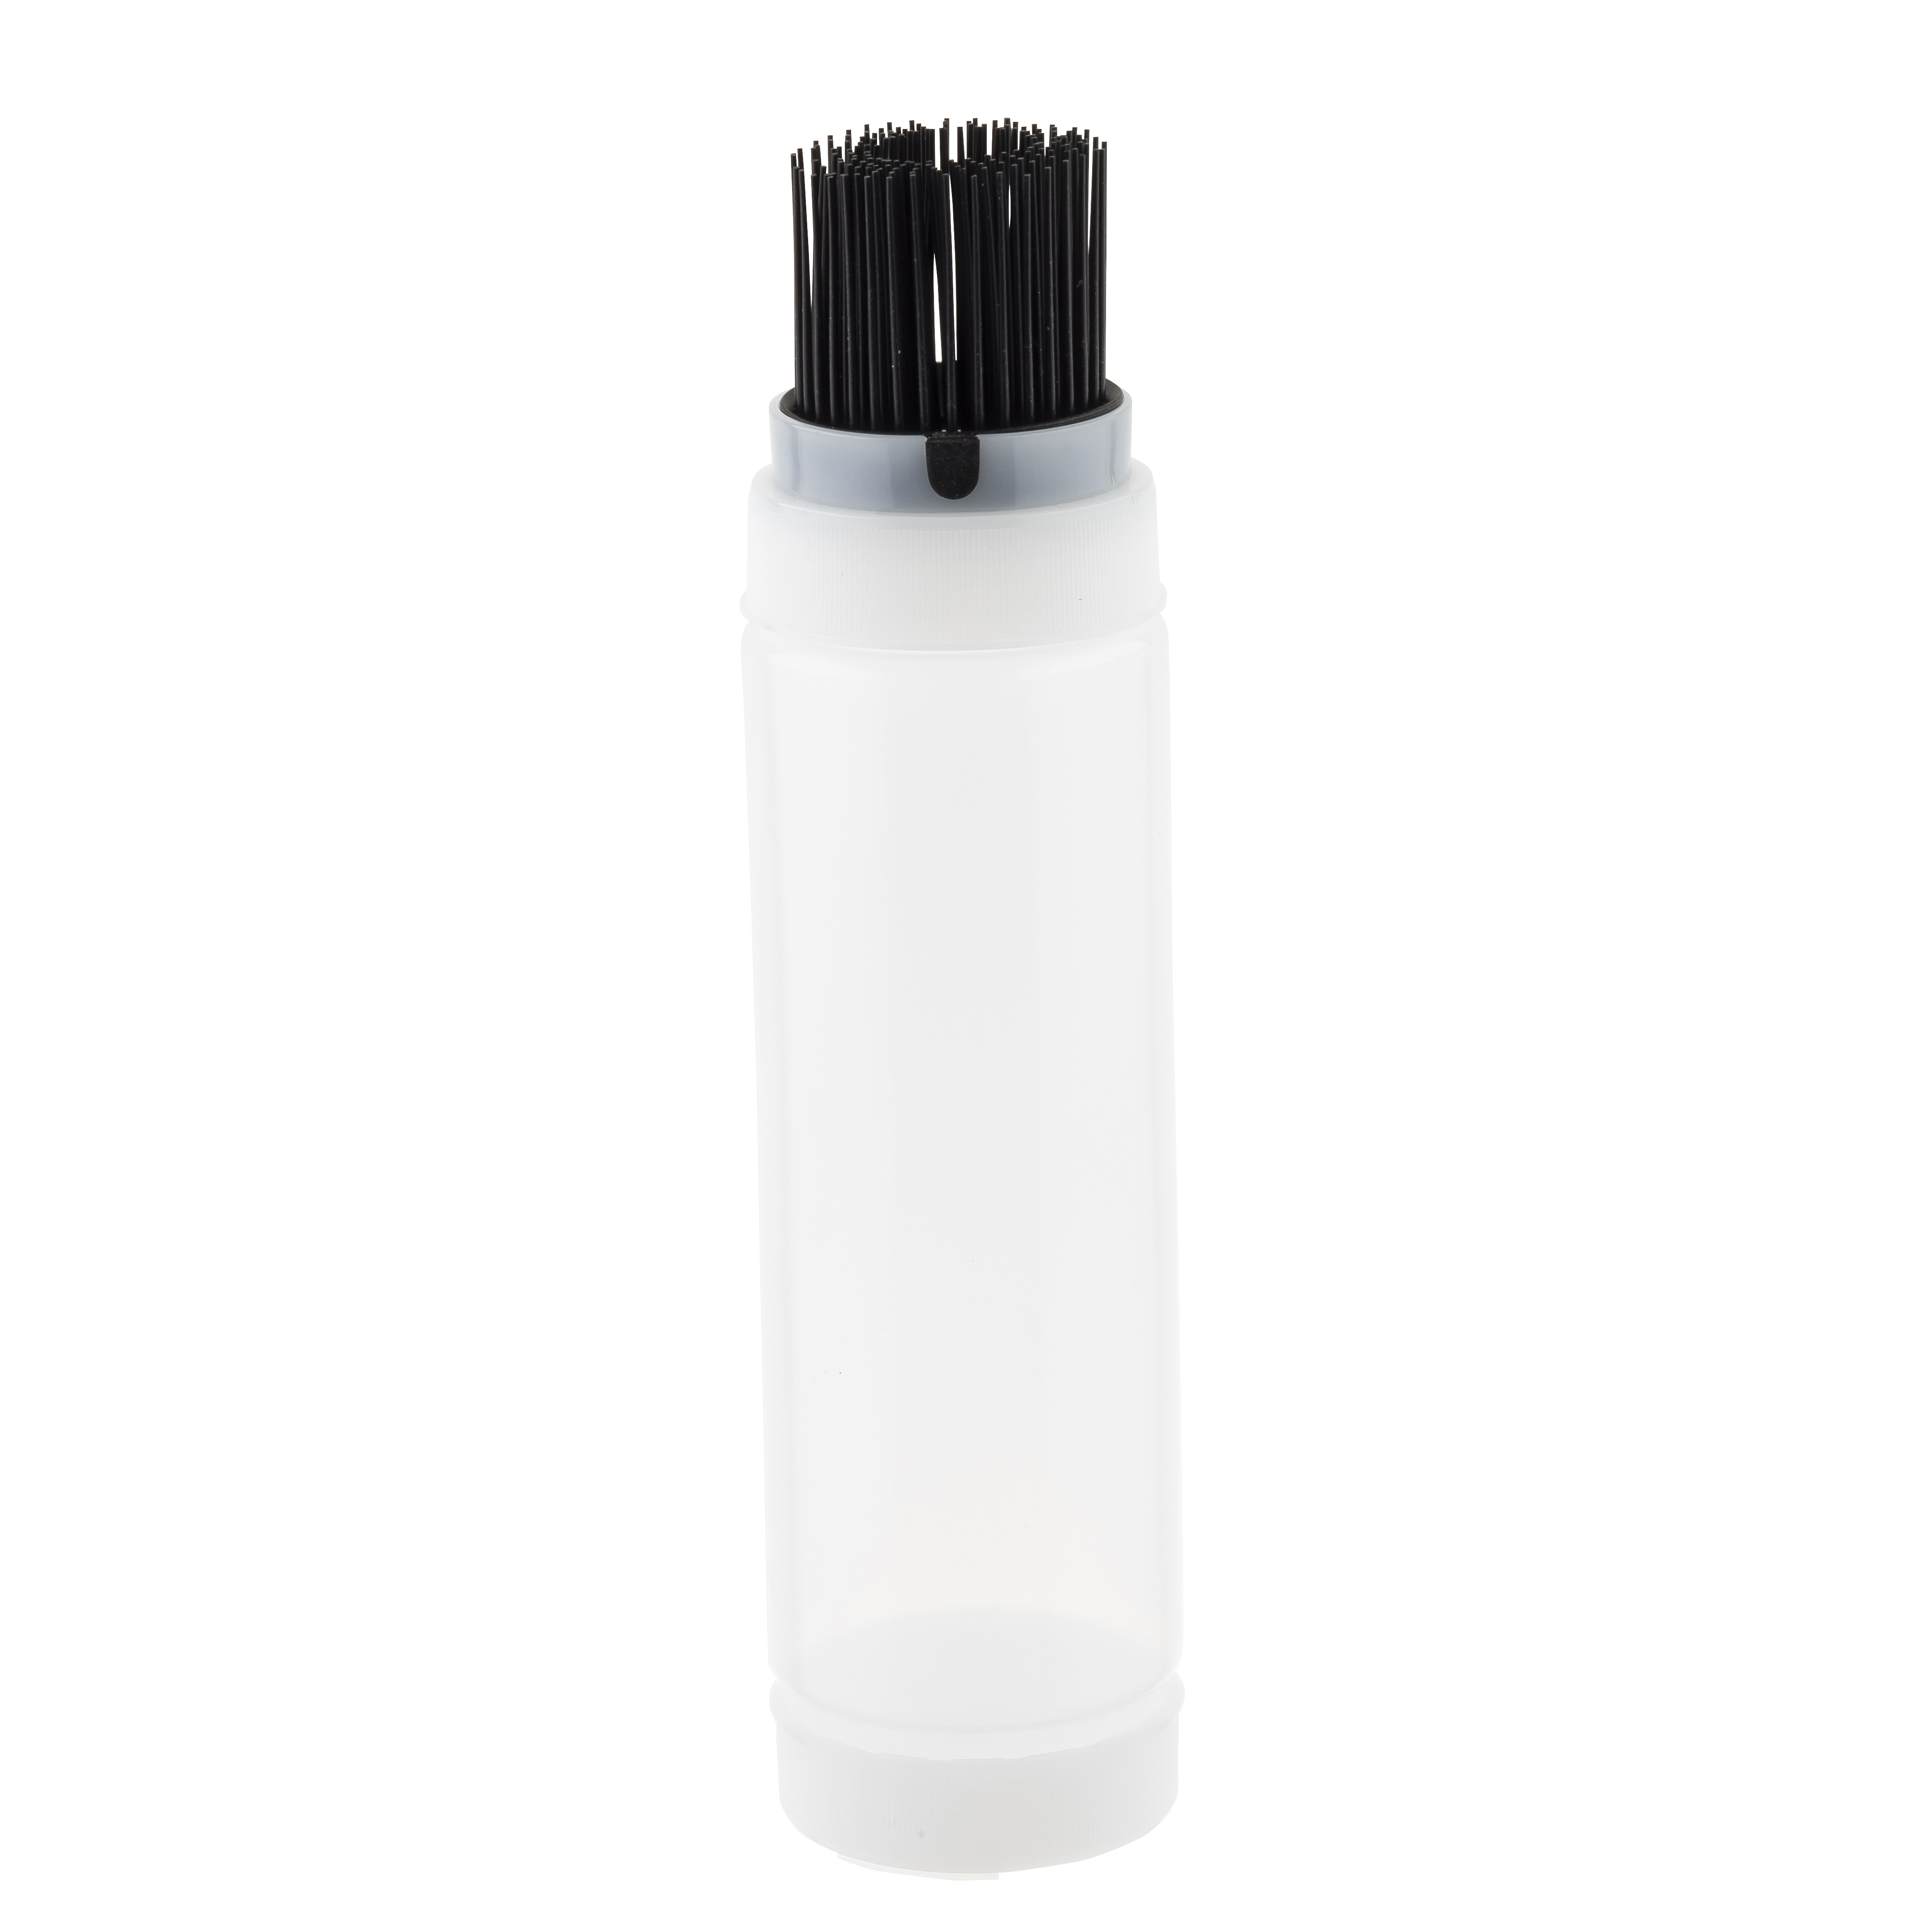 TableCraft Products 10727 squeeze bottle accessories